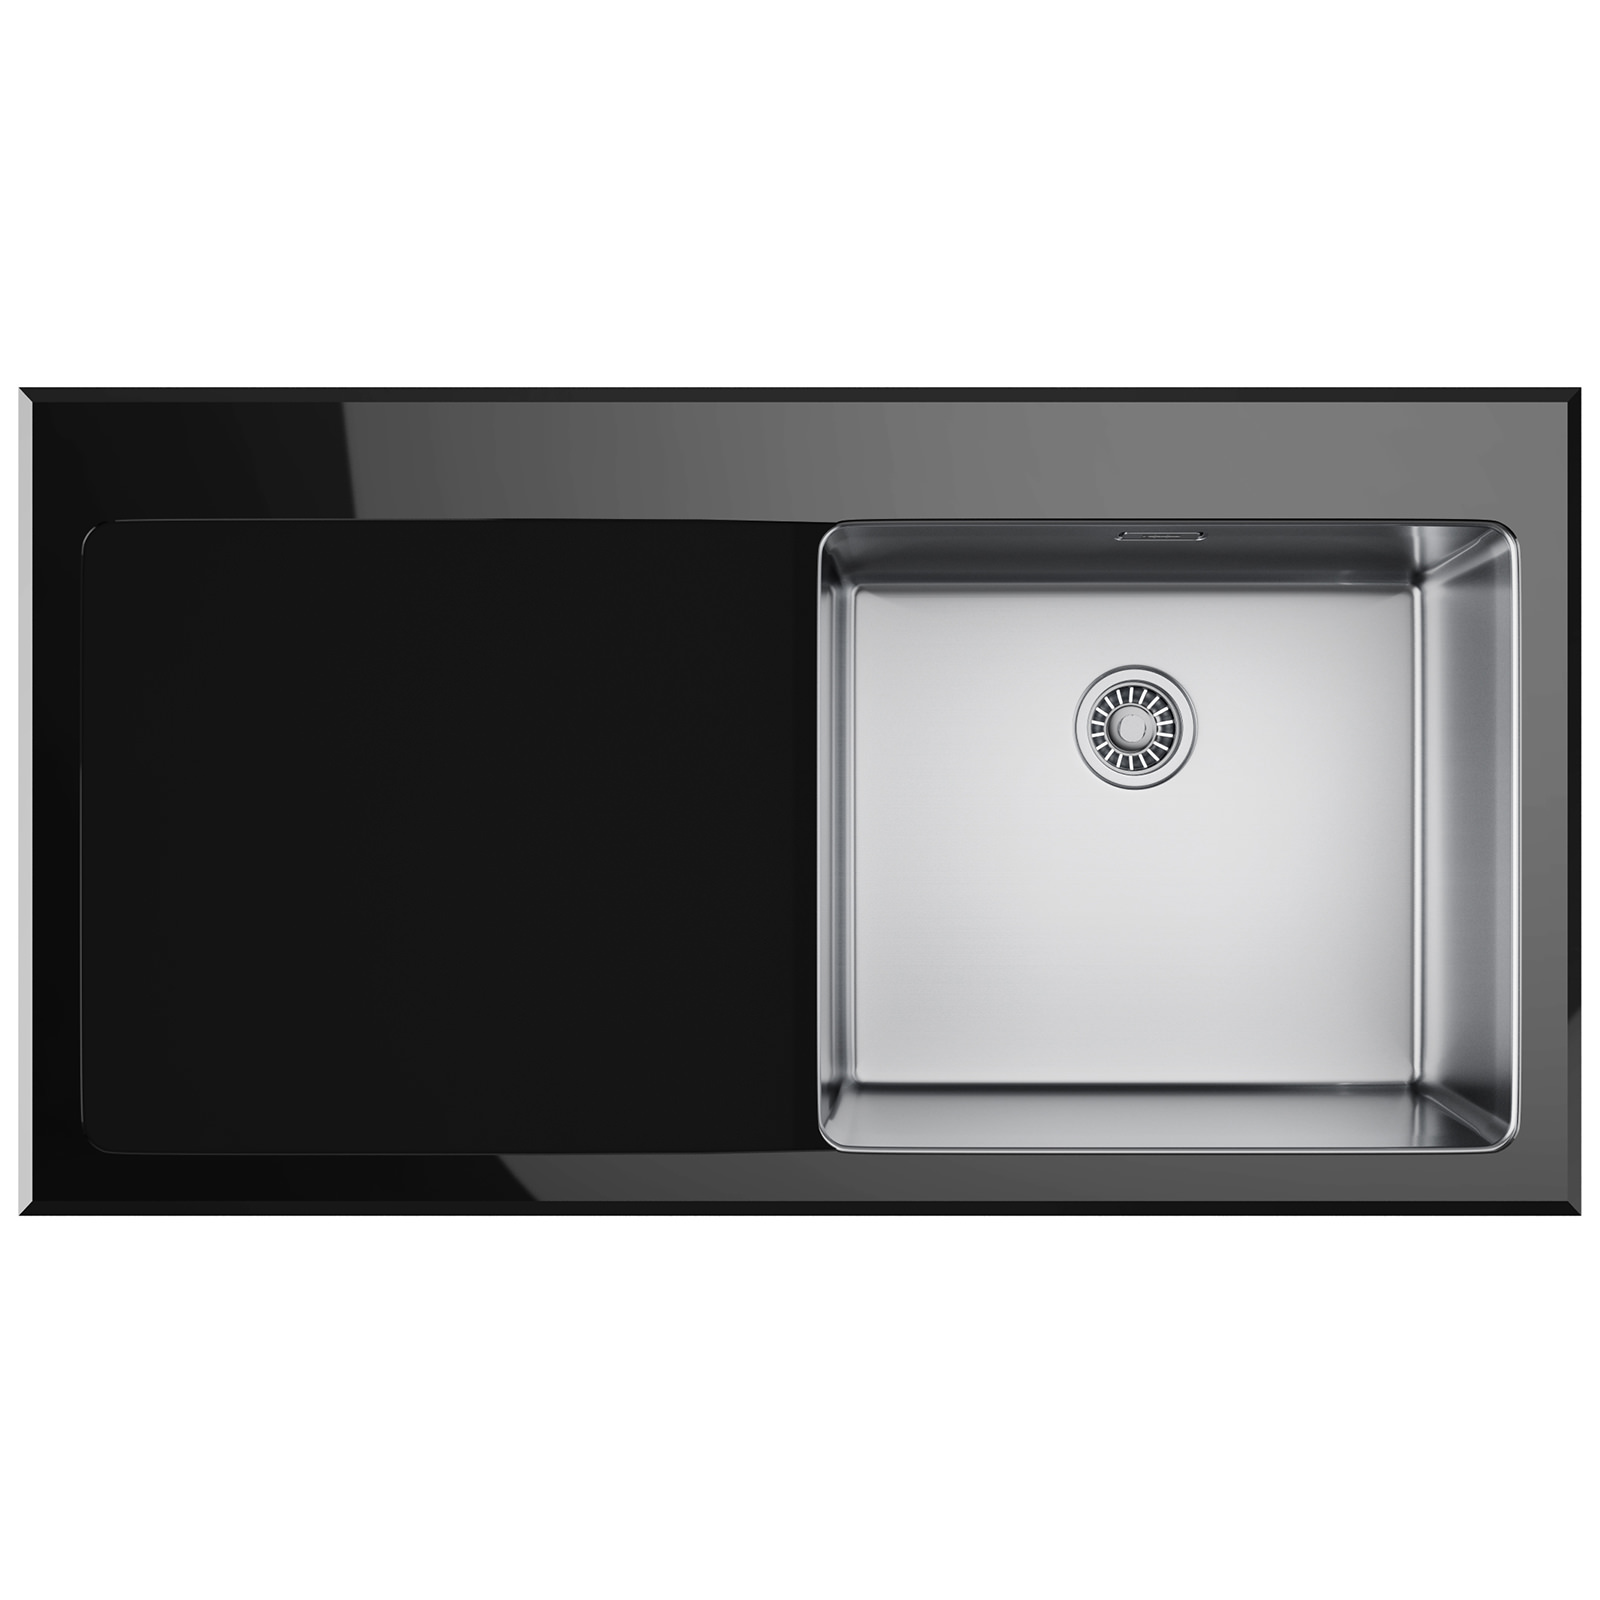 Franke Sink Kubus : ... bowl sink franke kubus kbv 611 black glass 1 0 bowl inset kitchen sink